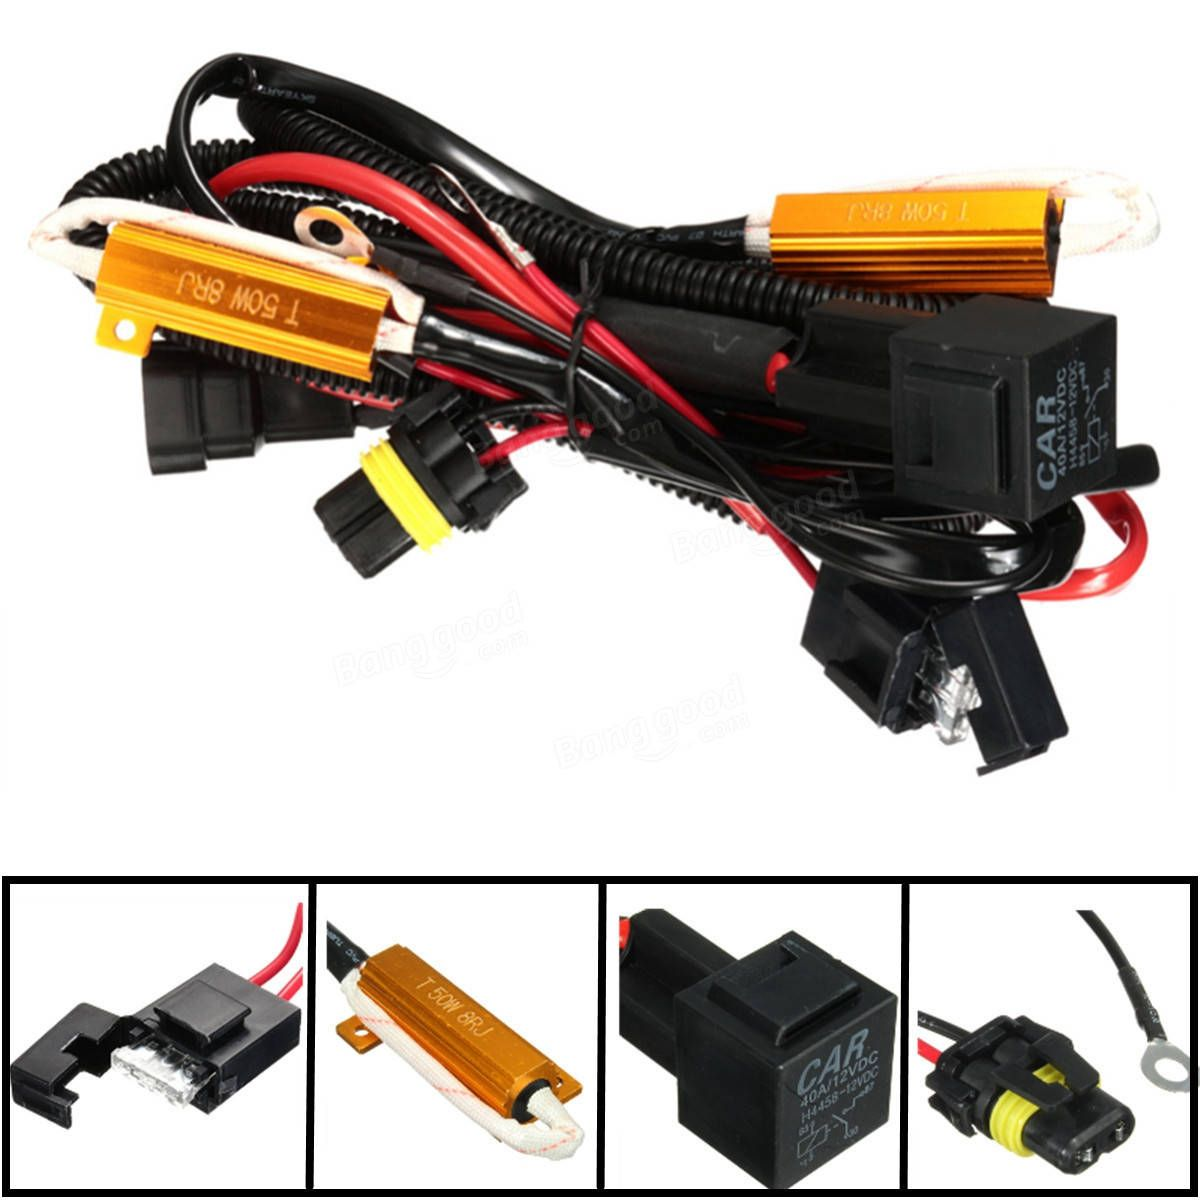 US$9.99] 40A Relay Wiring Harness 50W Load Resistor H1 H7 ... on hid wiring-diagram, led 12v light wiring, oil pressure gauge wiring, fuse block wiring, hid wiring to a 02 impala, cigarette lighter wiring,